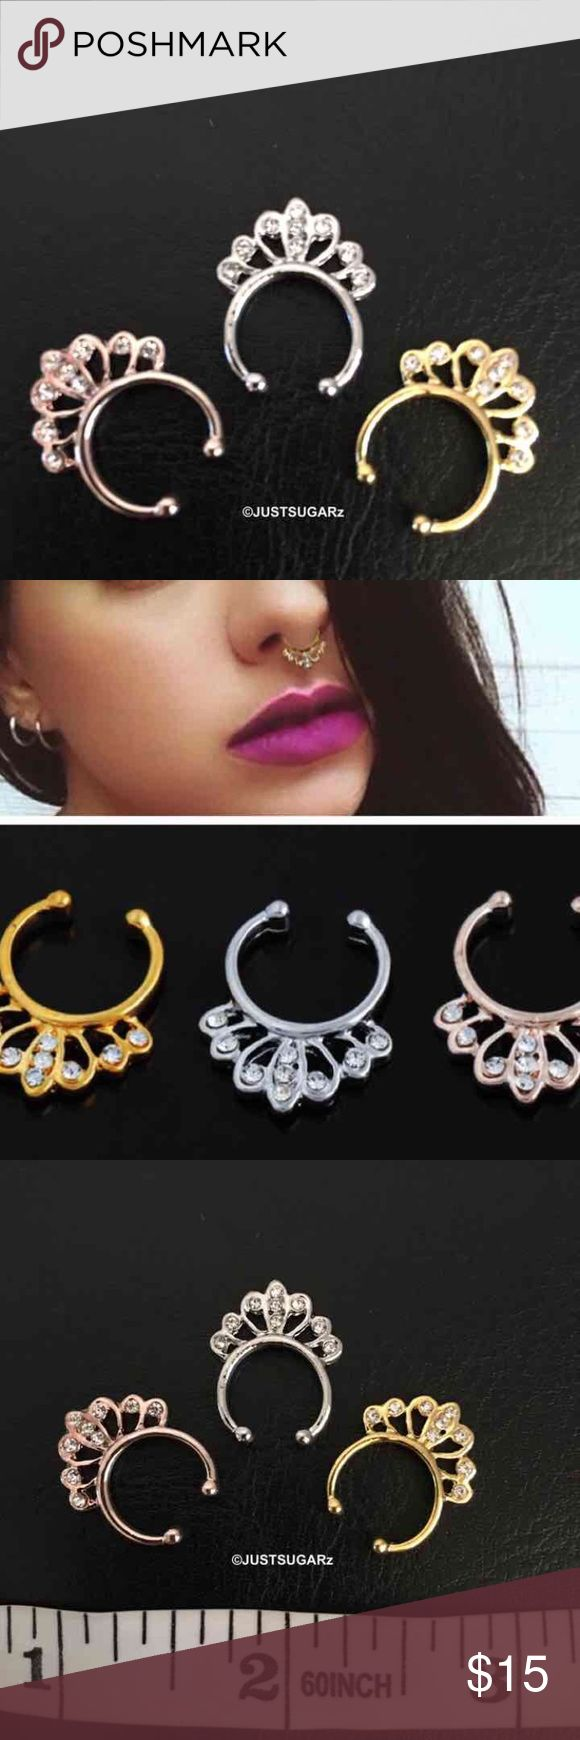 """3/$25 bull nose ring hoop non piercing 3/$25 bull nose ring hoop septum non piercing  Original price: 1/$11 Material: alloy/crystal ---no piercing  Colors available: silver, gold and rose gold  Look fabulous every day of the year. Wear them with a fancy outfit on a special night or casually ...Septum nose rings without having to actually pierce your nose!!!   Item does not have """"tags"""" but it sealed in plastic and bubble wrap for secure shipping. Never used...brand new. Please keep in mind…"""